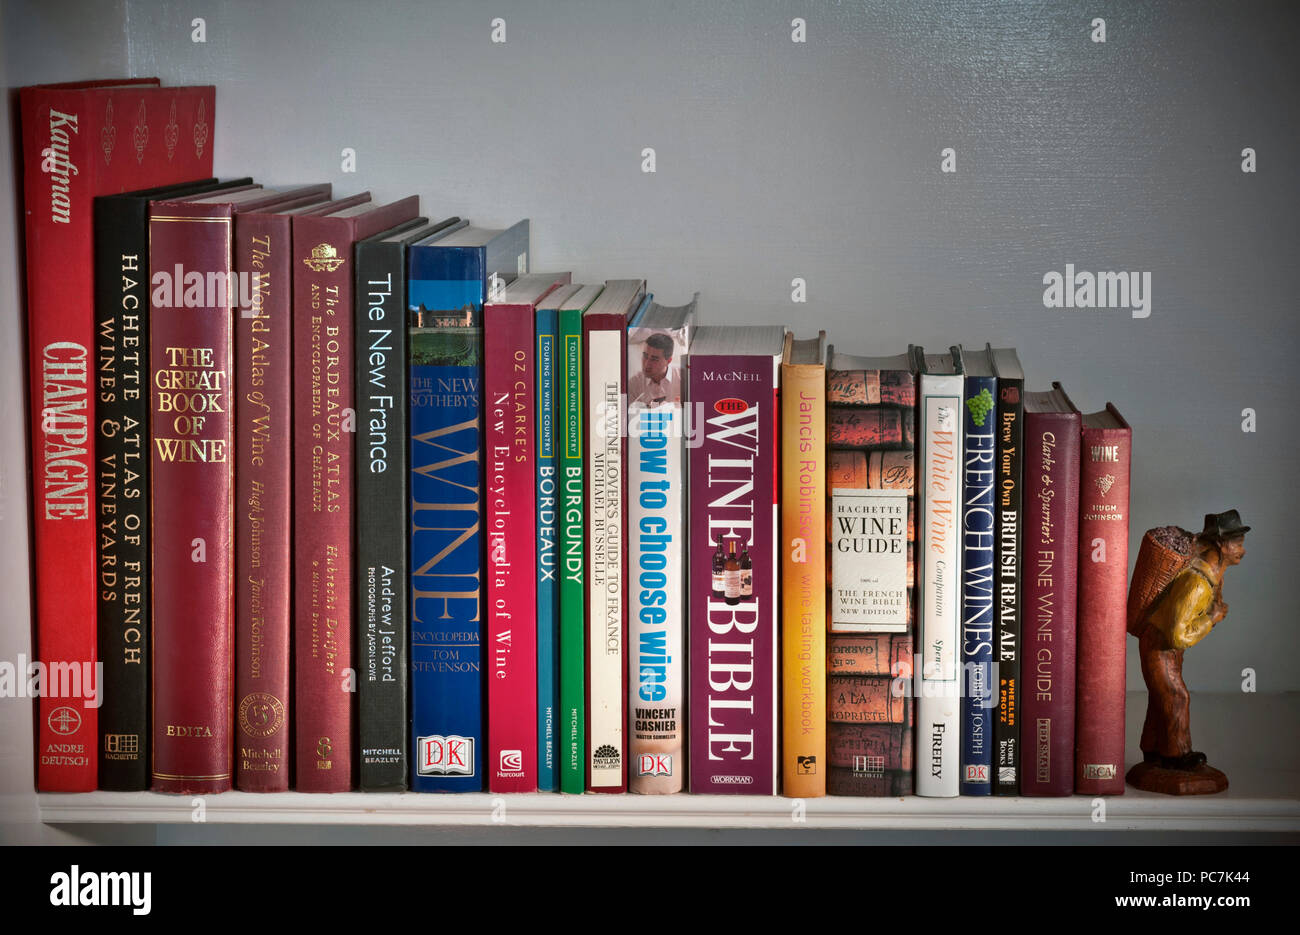 WINE BOOKS VINTAGES GRAPES GEOGRAPHY Variety of classic and contemporary wine reference books on bookshelf with carved grape harvester bookend figure - Stock Image